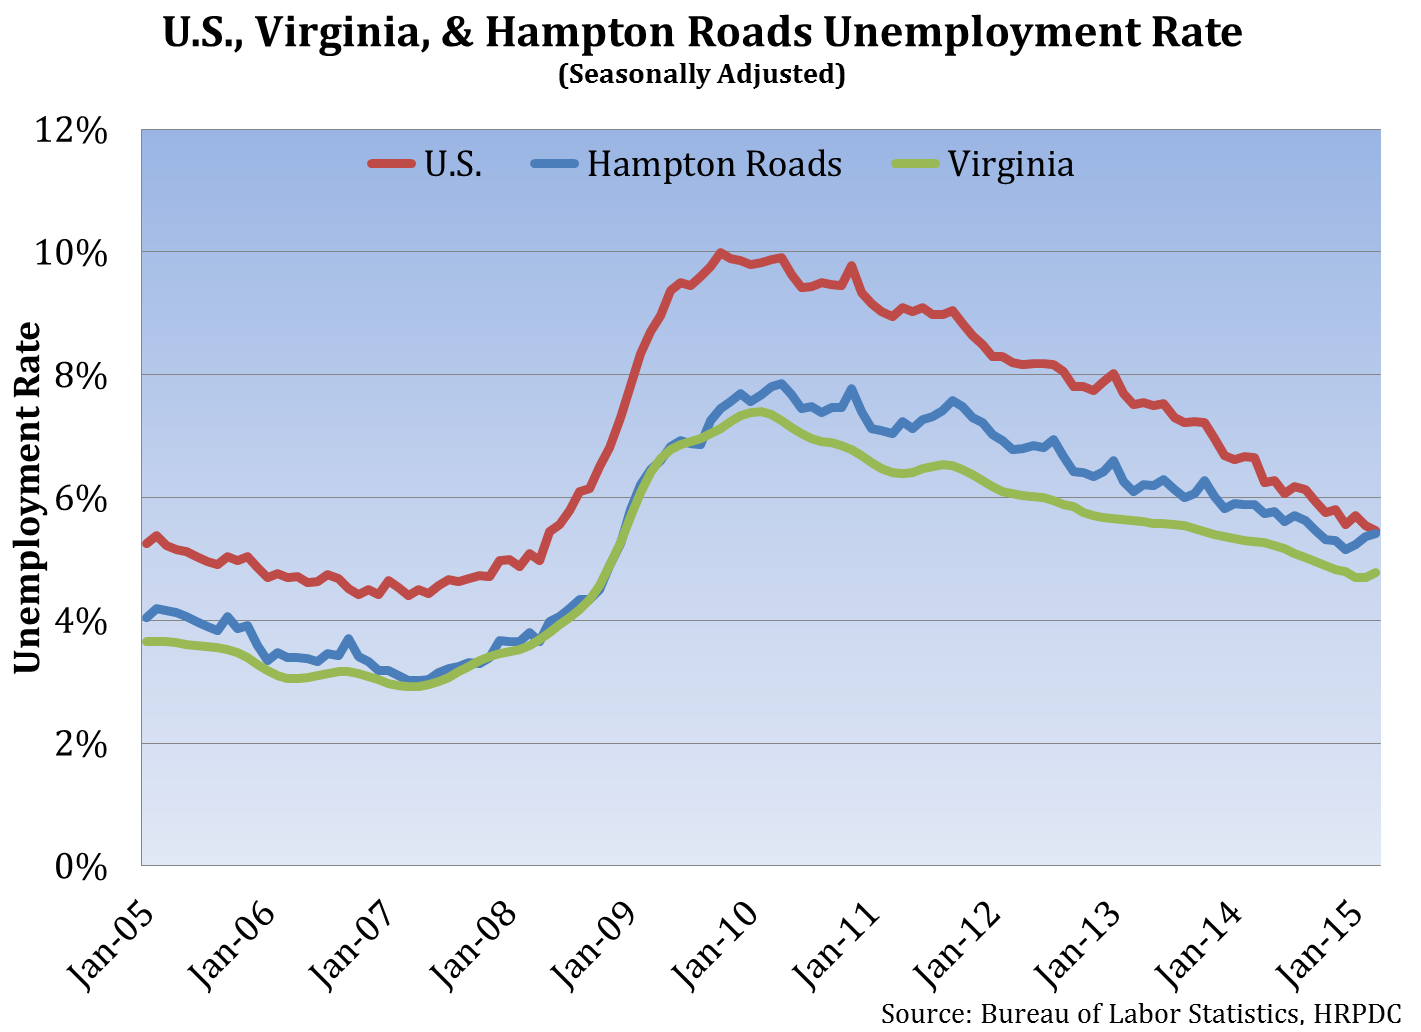 U.S., Virginia & Hampton Roads Unemployment Rate